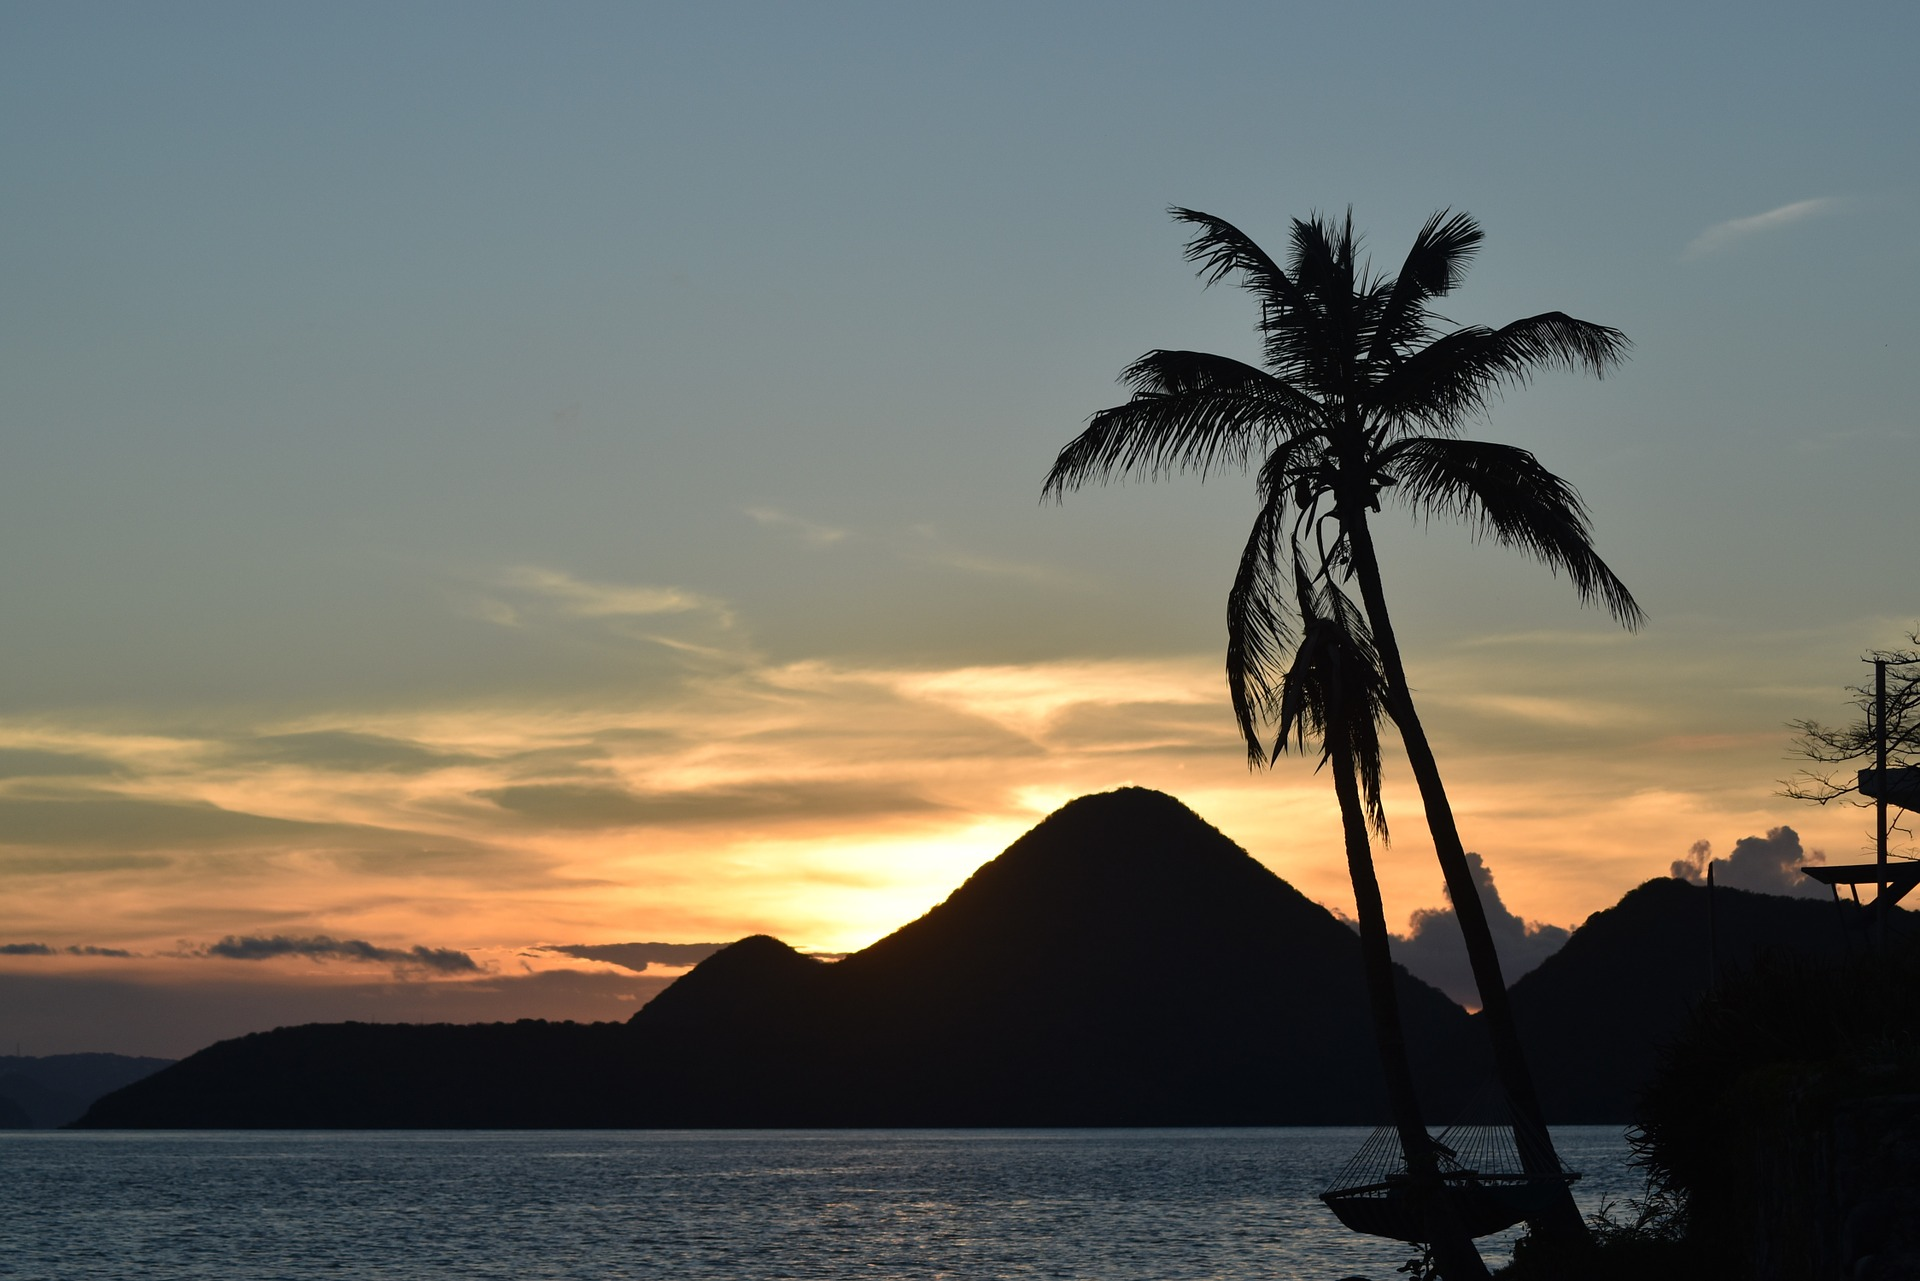 sunset with palm tree in foreground and mountain of Tortola, British Virgin Islands in background